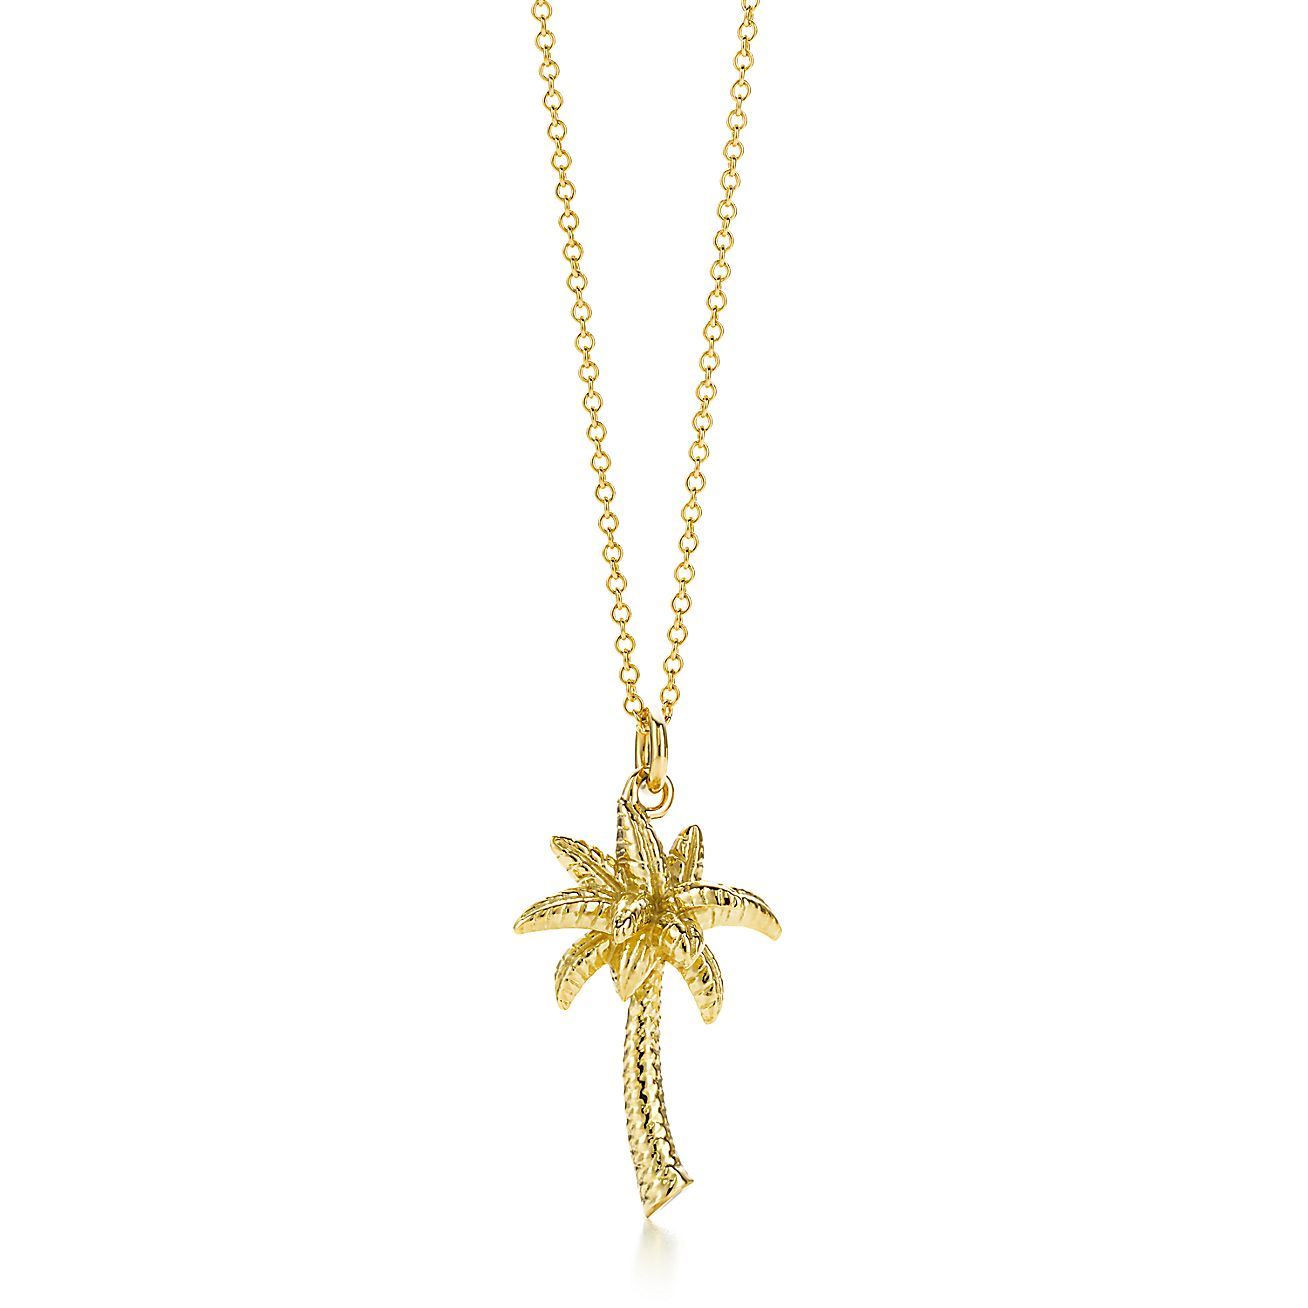 palmtree jewelry palm tree pendant in 18k gold co 5151